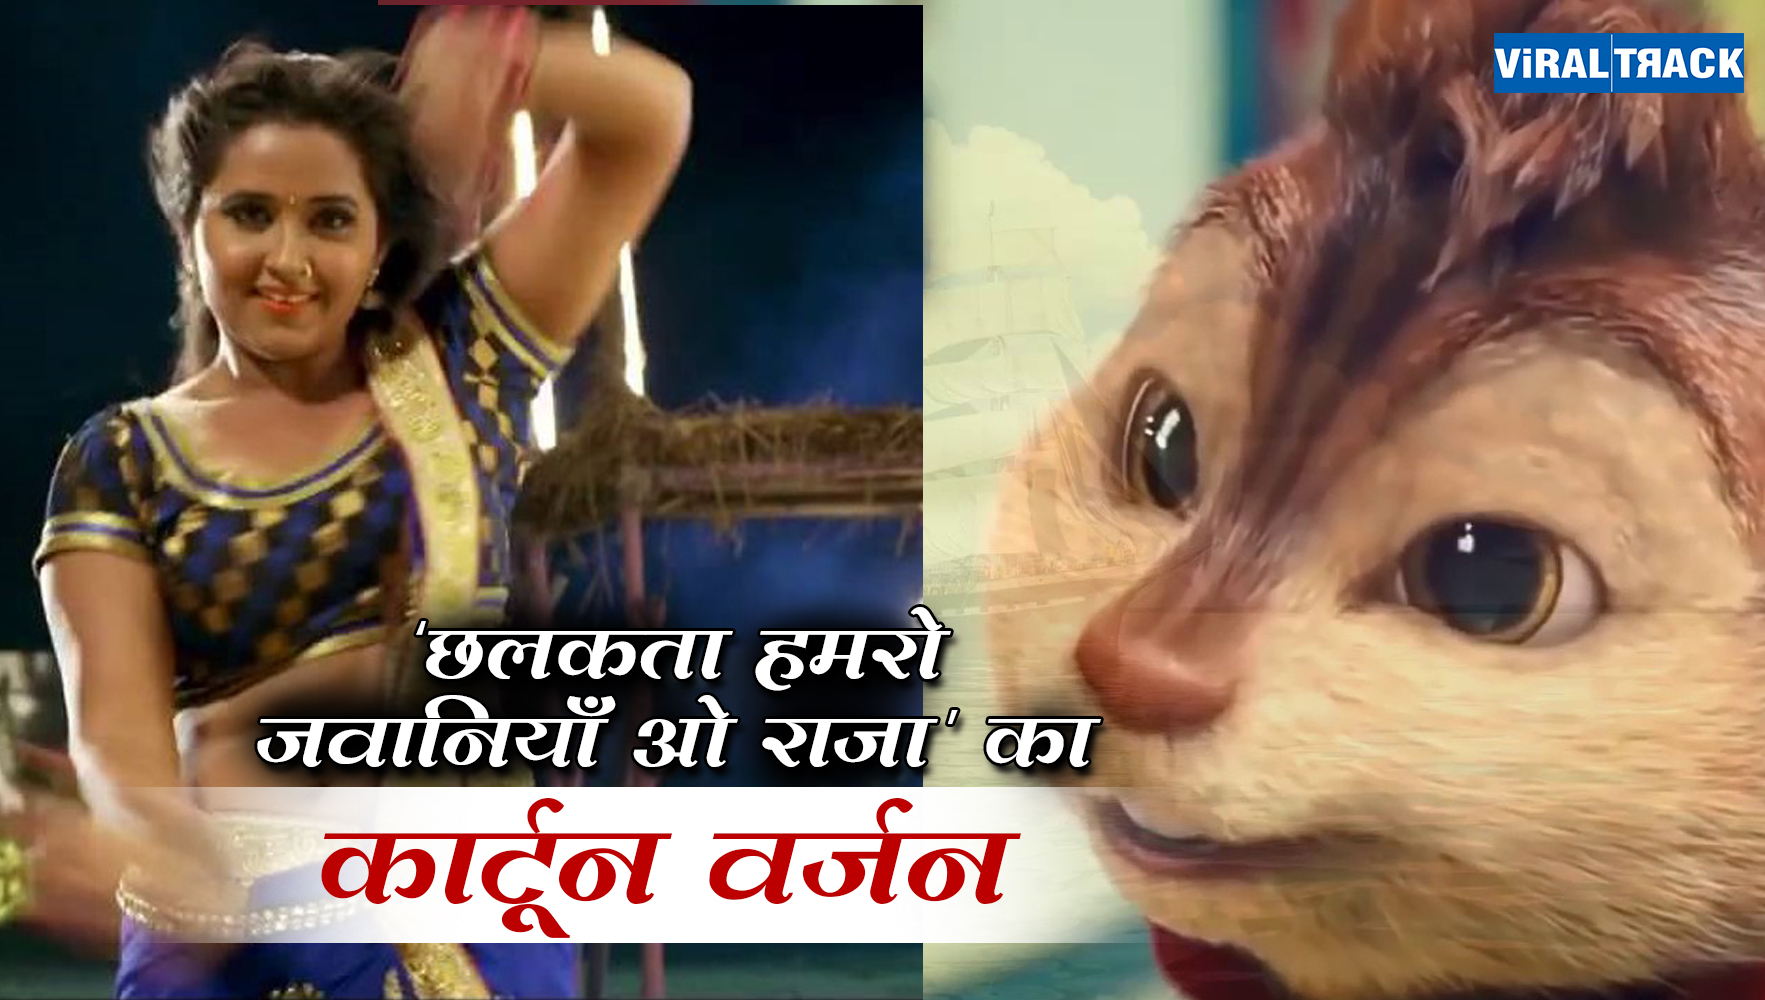 Chhalakata Hamro Jawaniya Chipmunk songs Bhojpuri very funny video